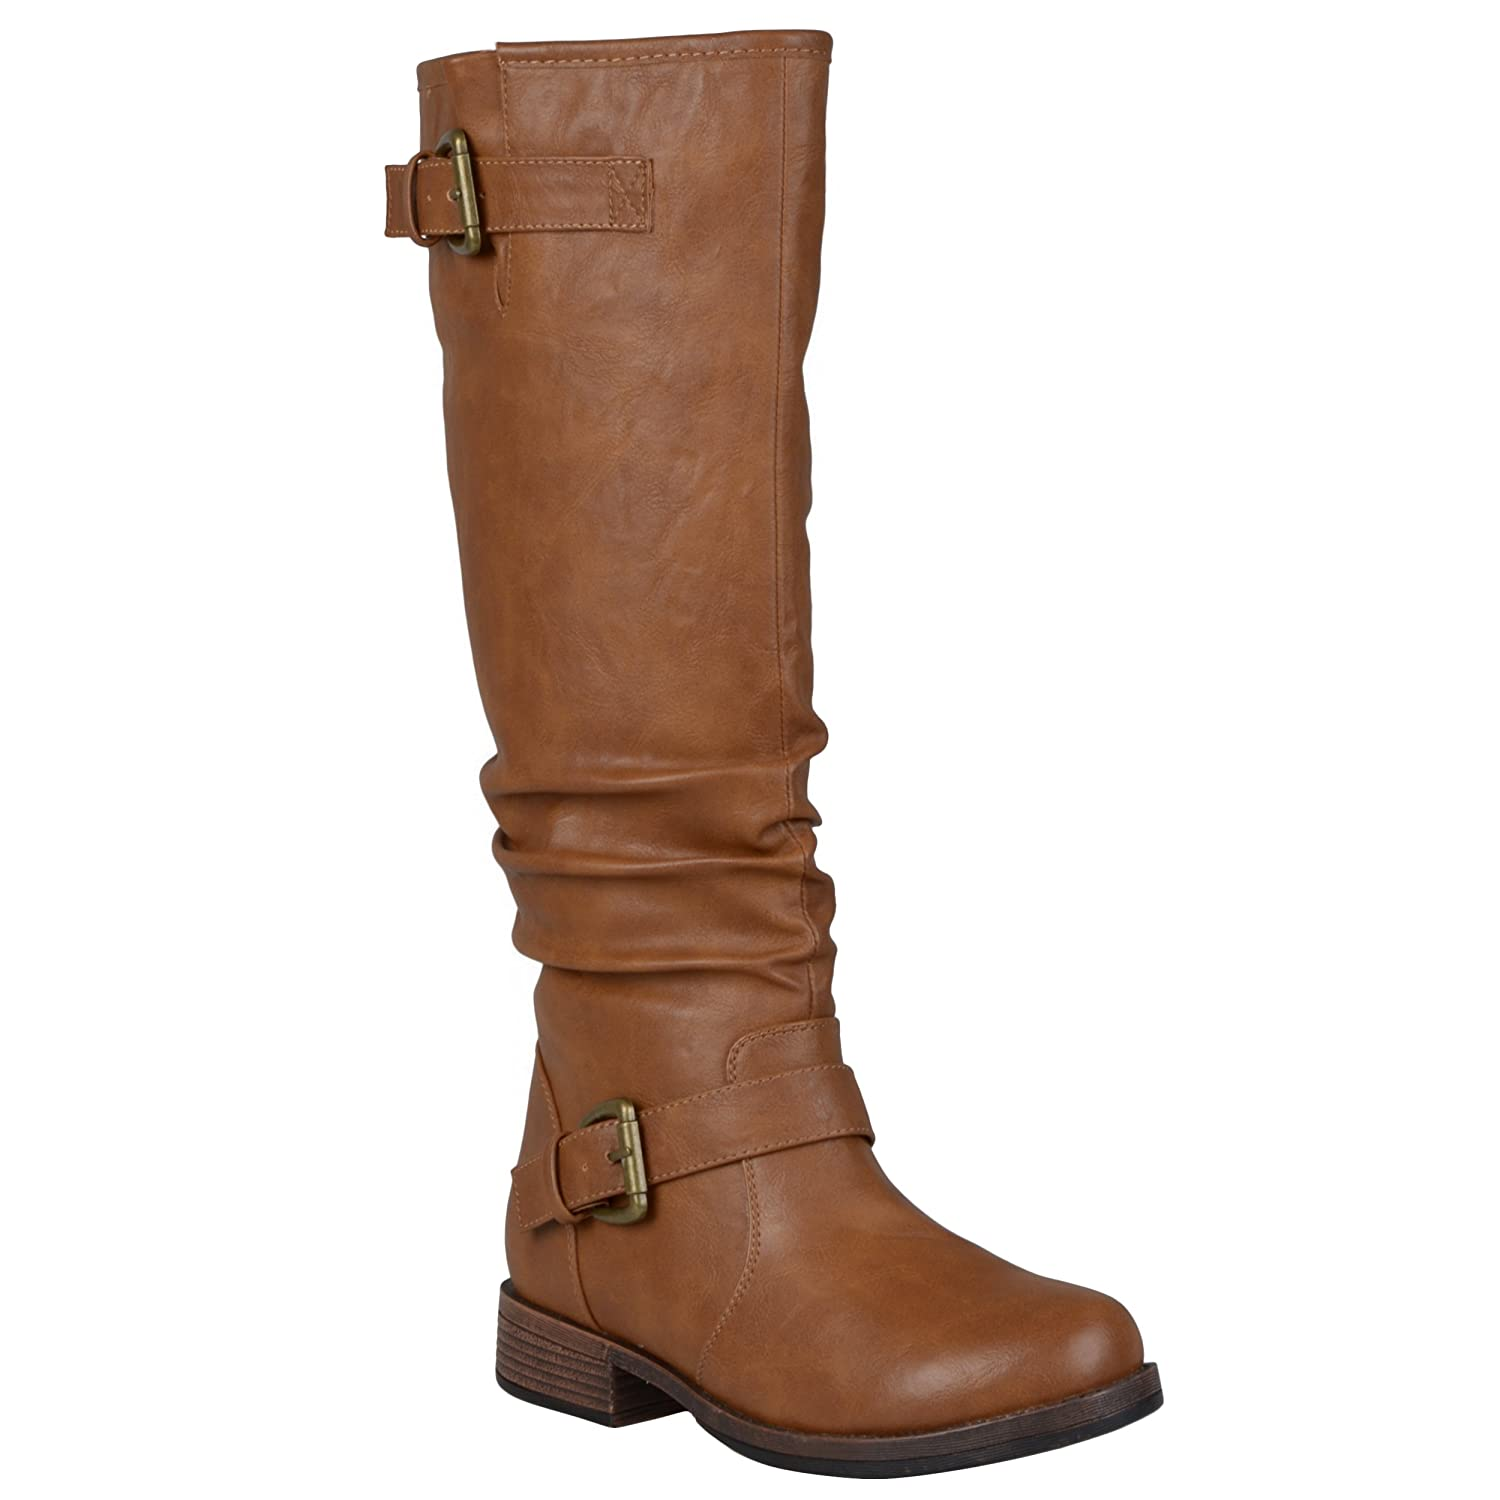 Women's Tan Knee High Extra Wide-Calf Low Heel Buckle Faux Leather Riding Boots